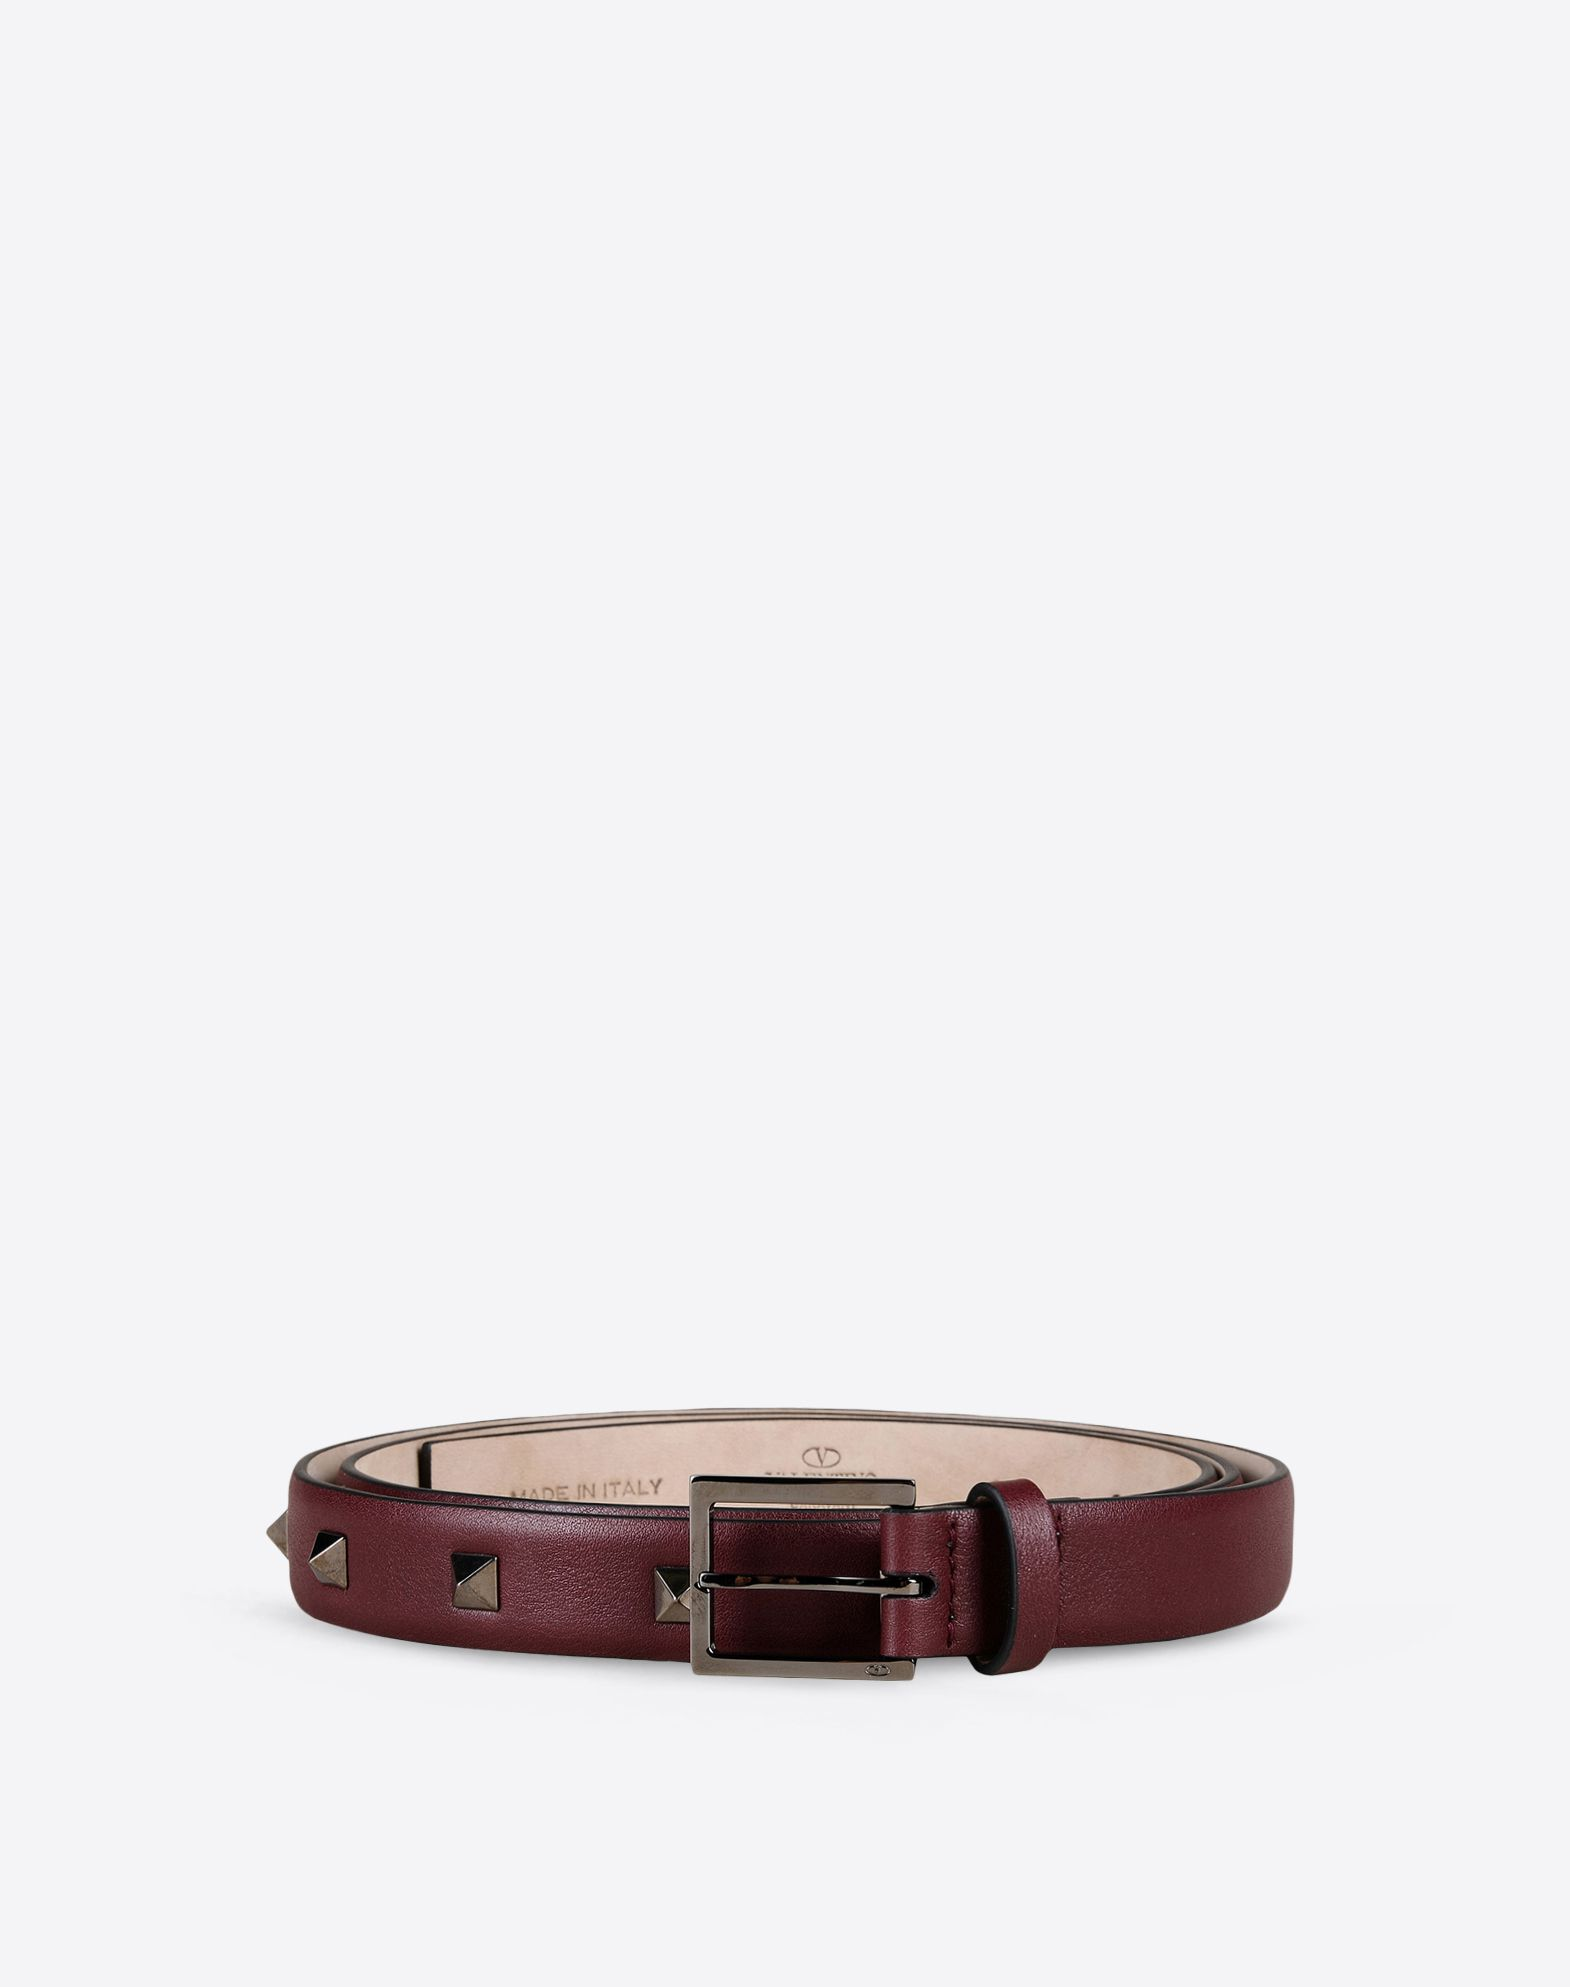 Small Leather Goods - Belts Red Valentino 4PW1r